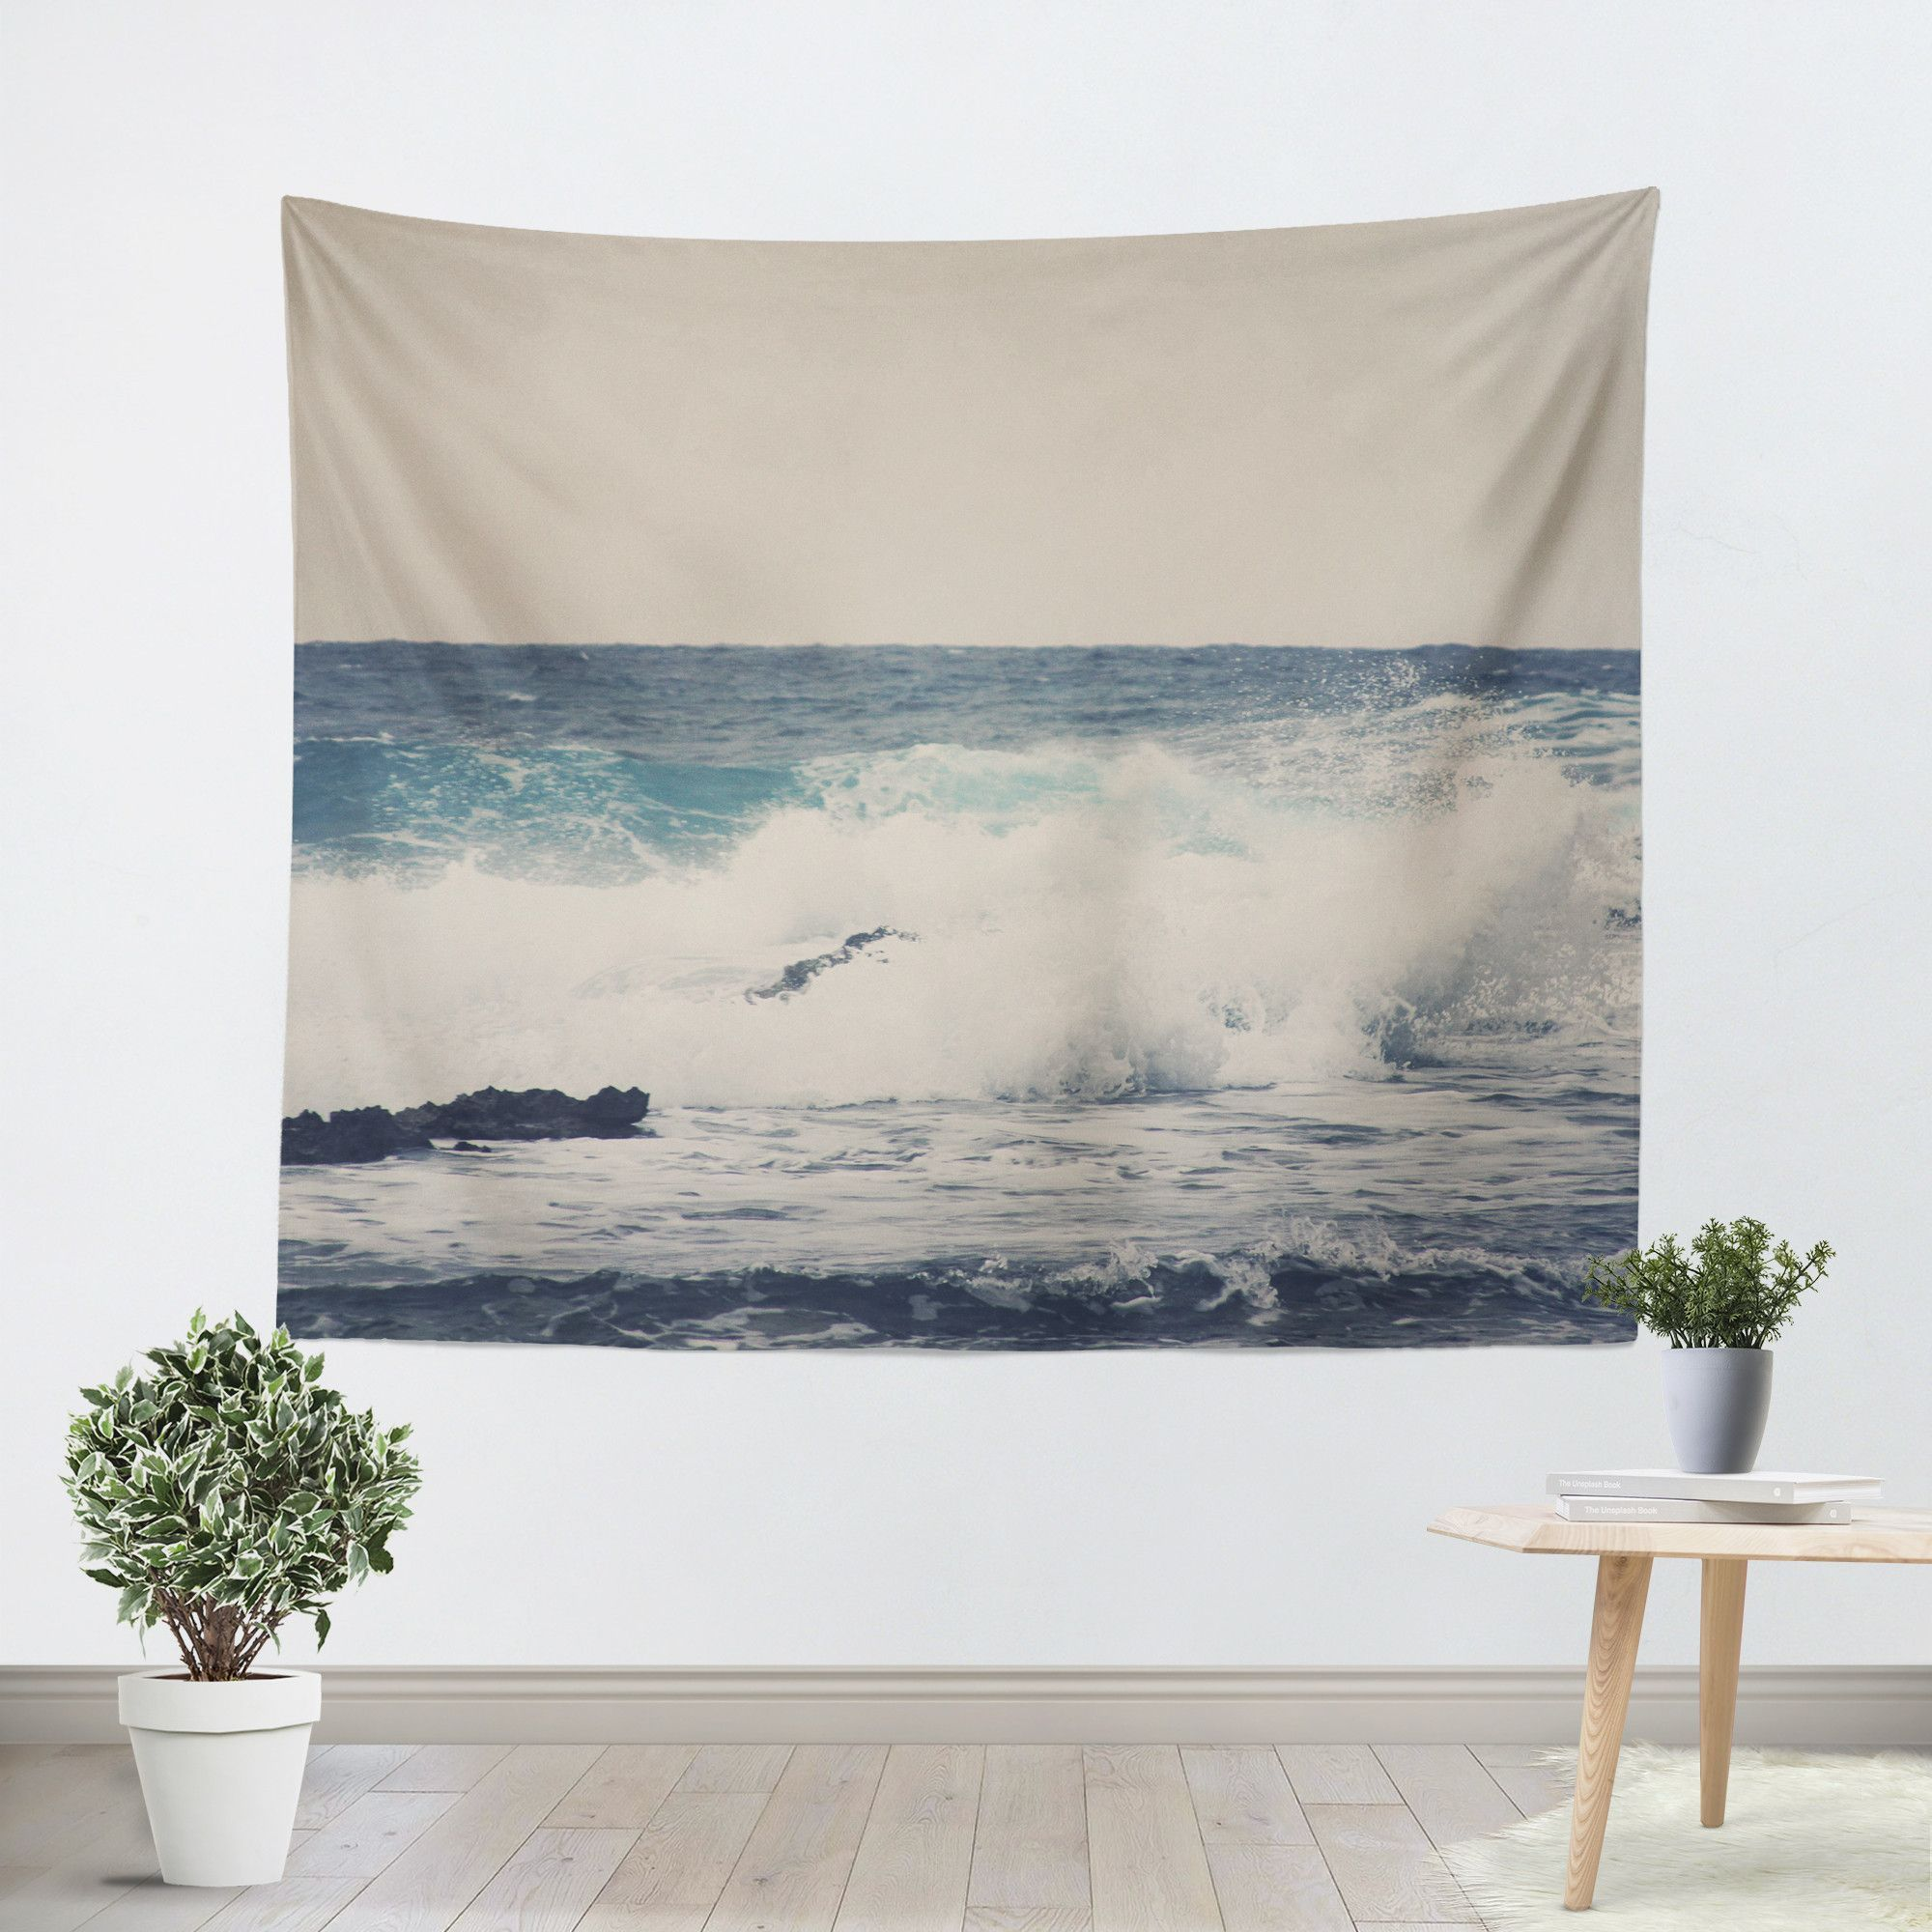 Ocean Blue 1 Tapestry Our Wall Tapestries are made of 100% lightweight polyester with hand-sewn finished edges. Machine washable with cold water on gentle cycle using mild detergent tumble dry with lo